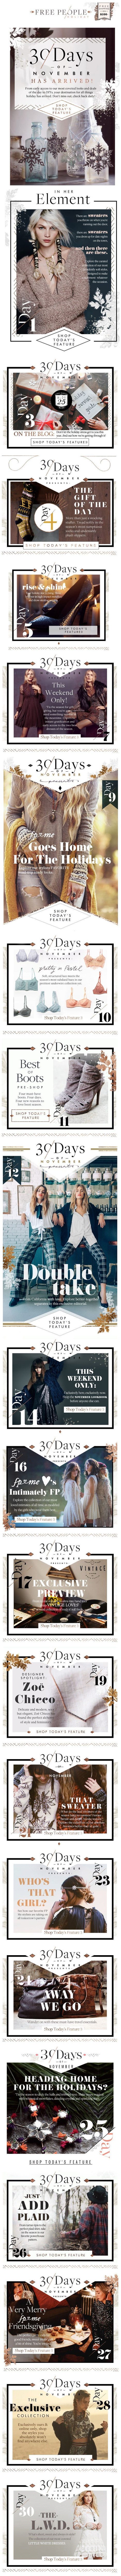 Free People : Days Of November email design                                                                                                                                                                                 More